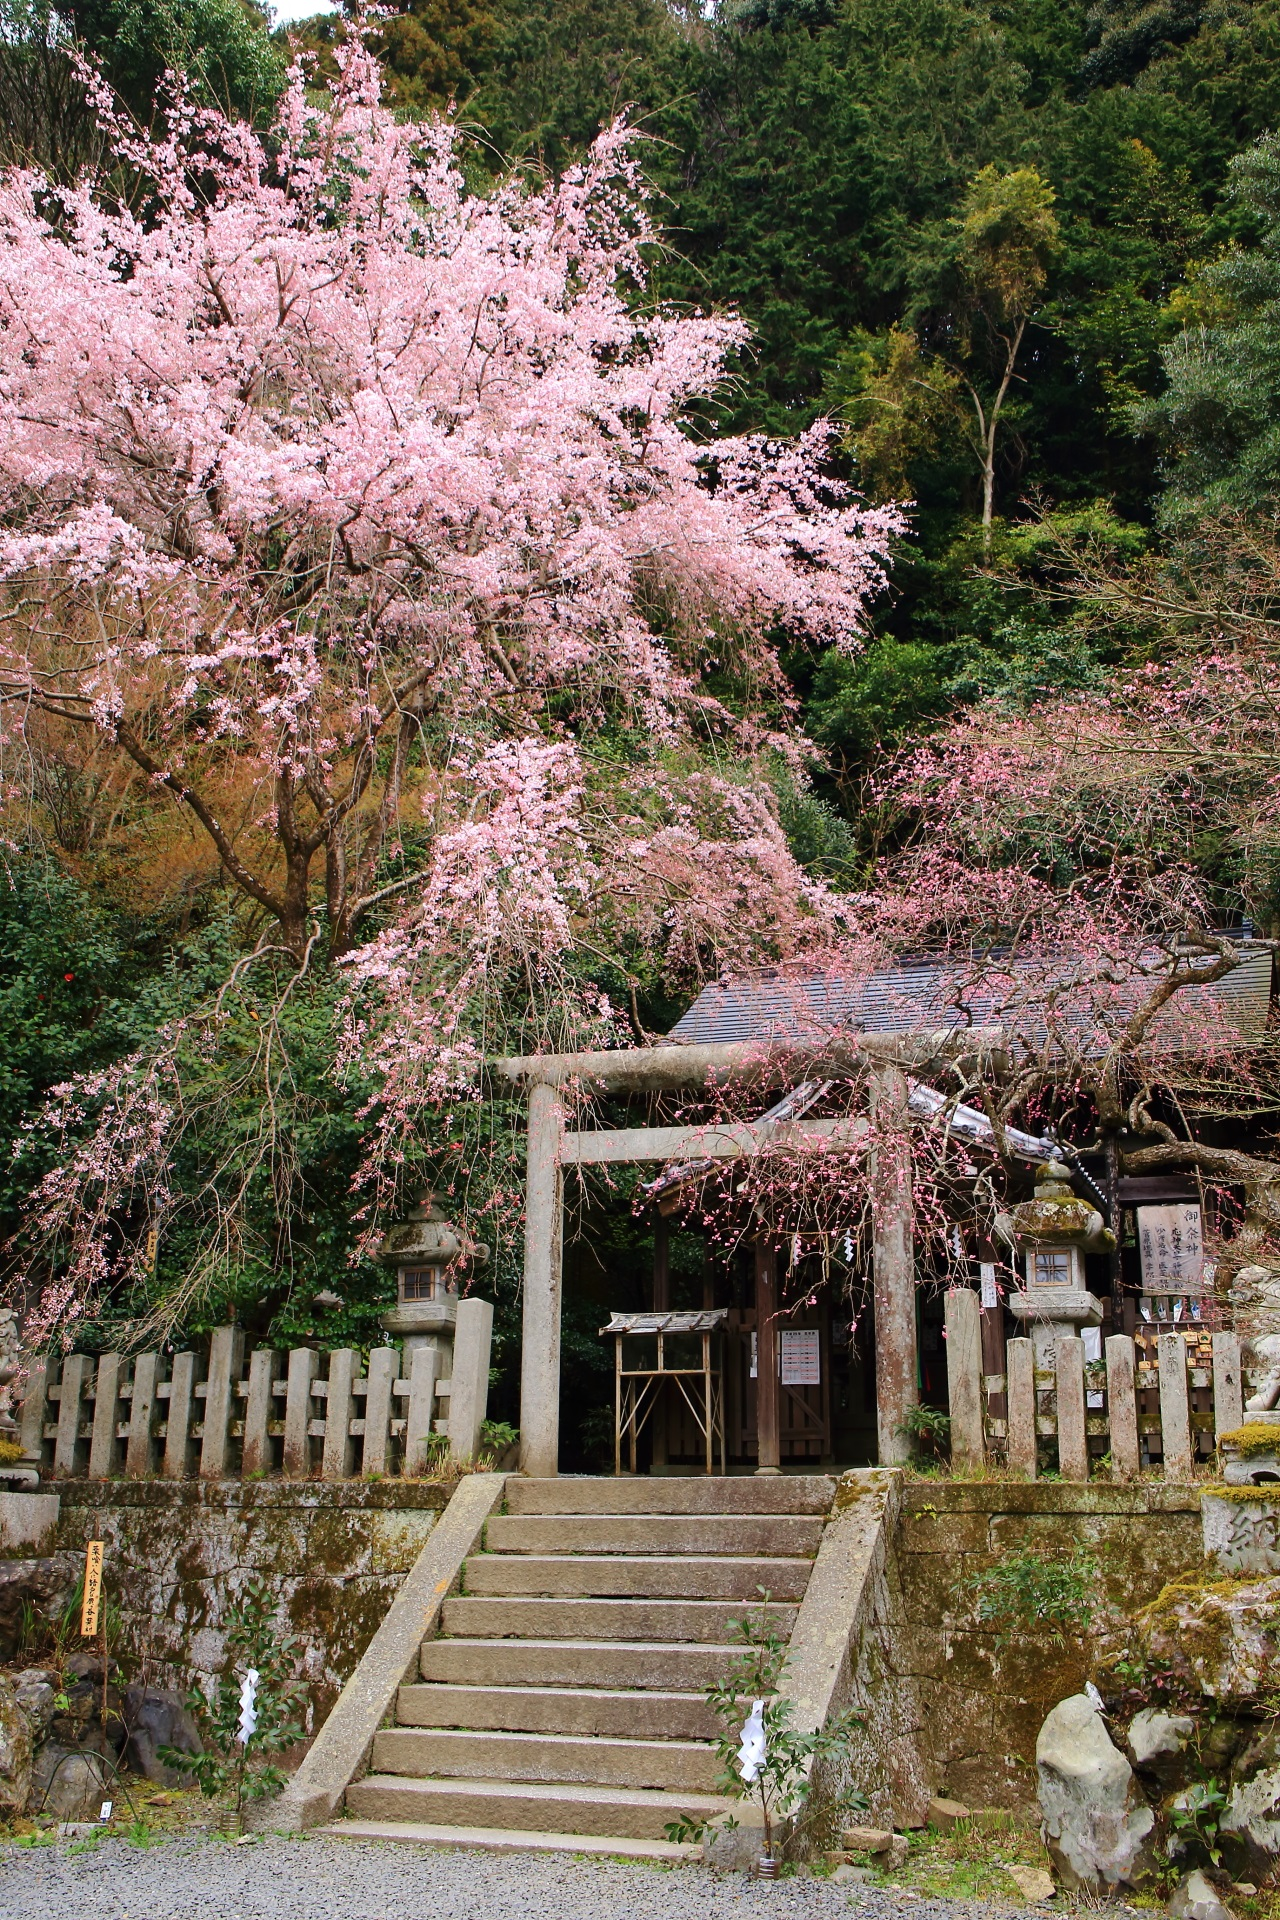 Kyoto Otoyo-jinja shrine weeping cherry tree and plum blossom